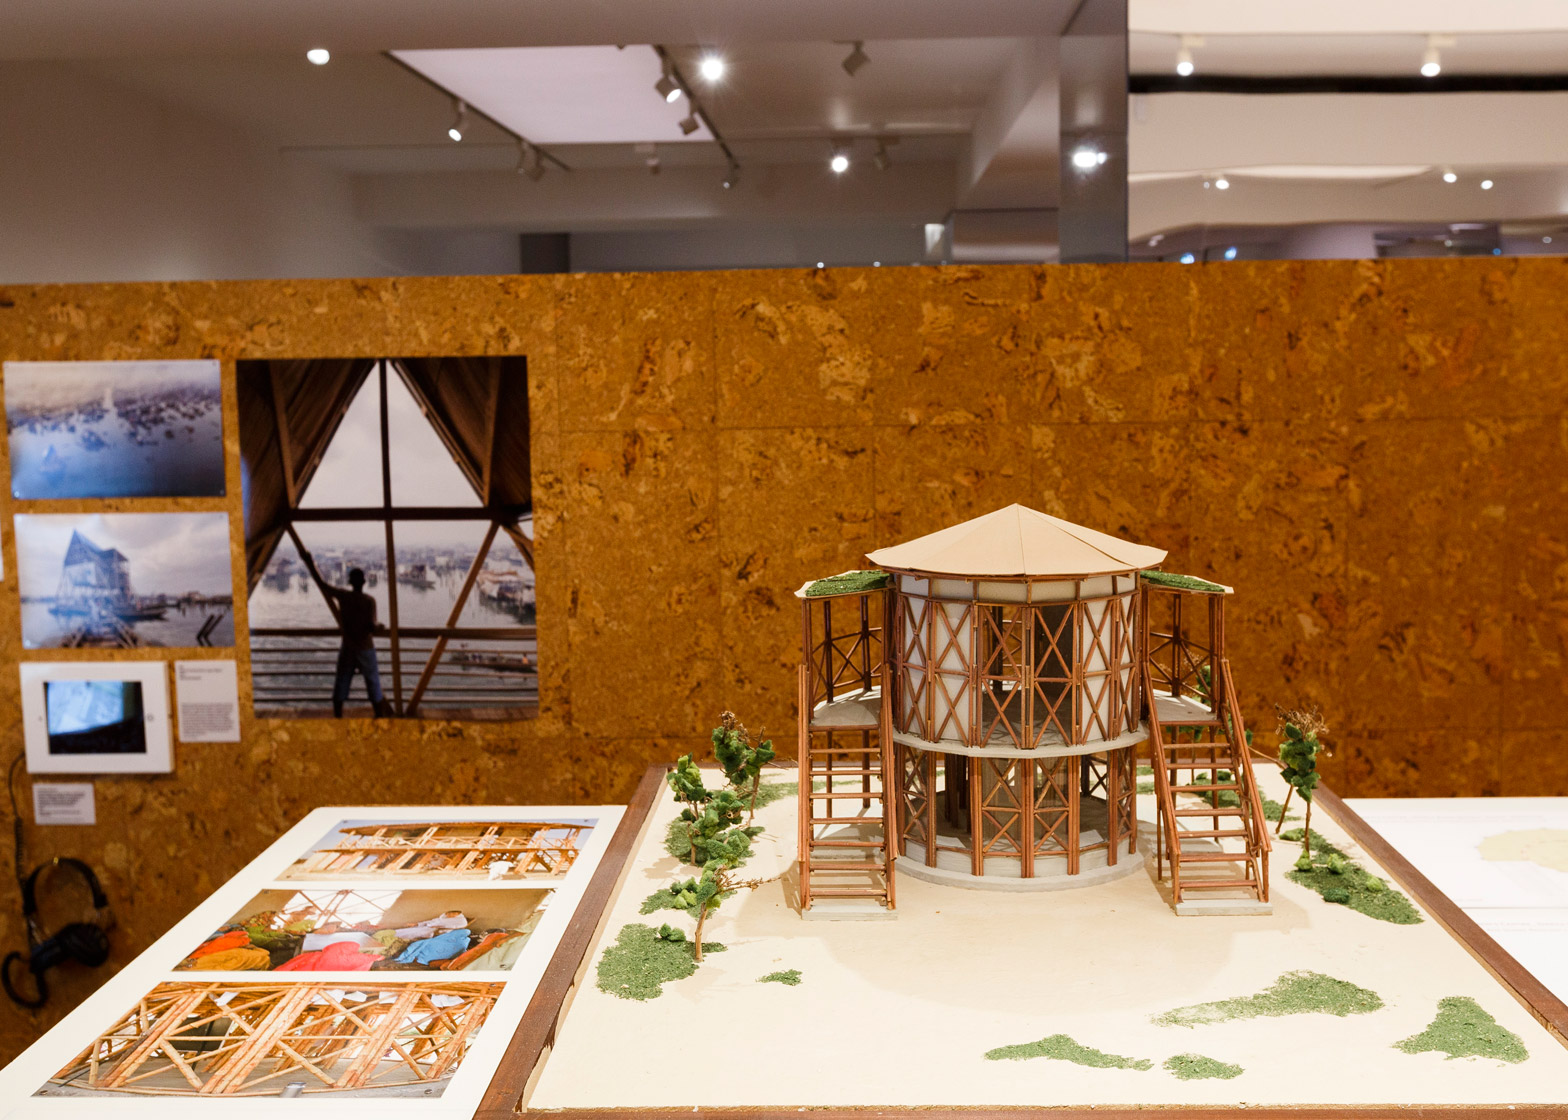 Creation from Catastrophe exhibition at the RIBA, London